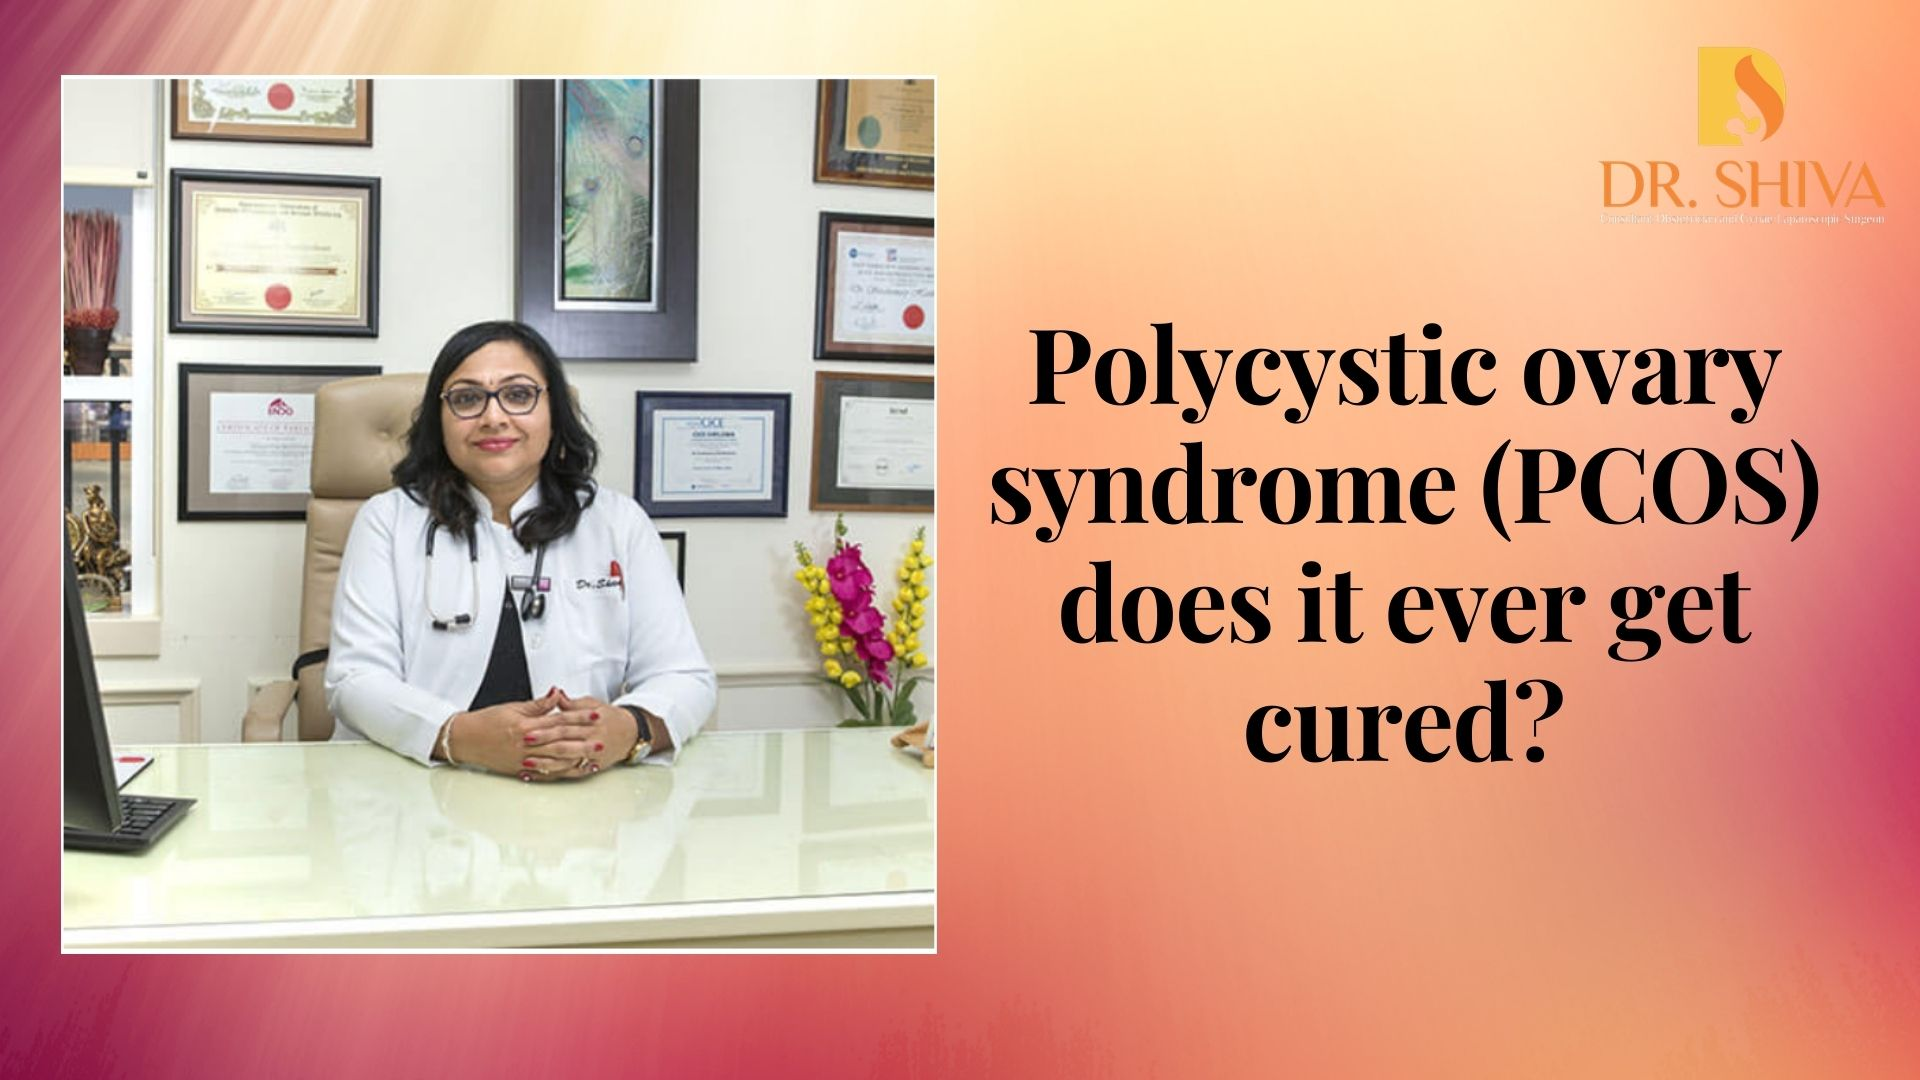 Polycystic ovary syndrome (PCOS) does it ever get cured?